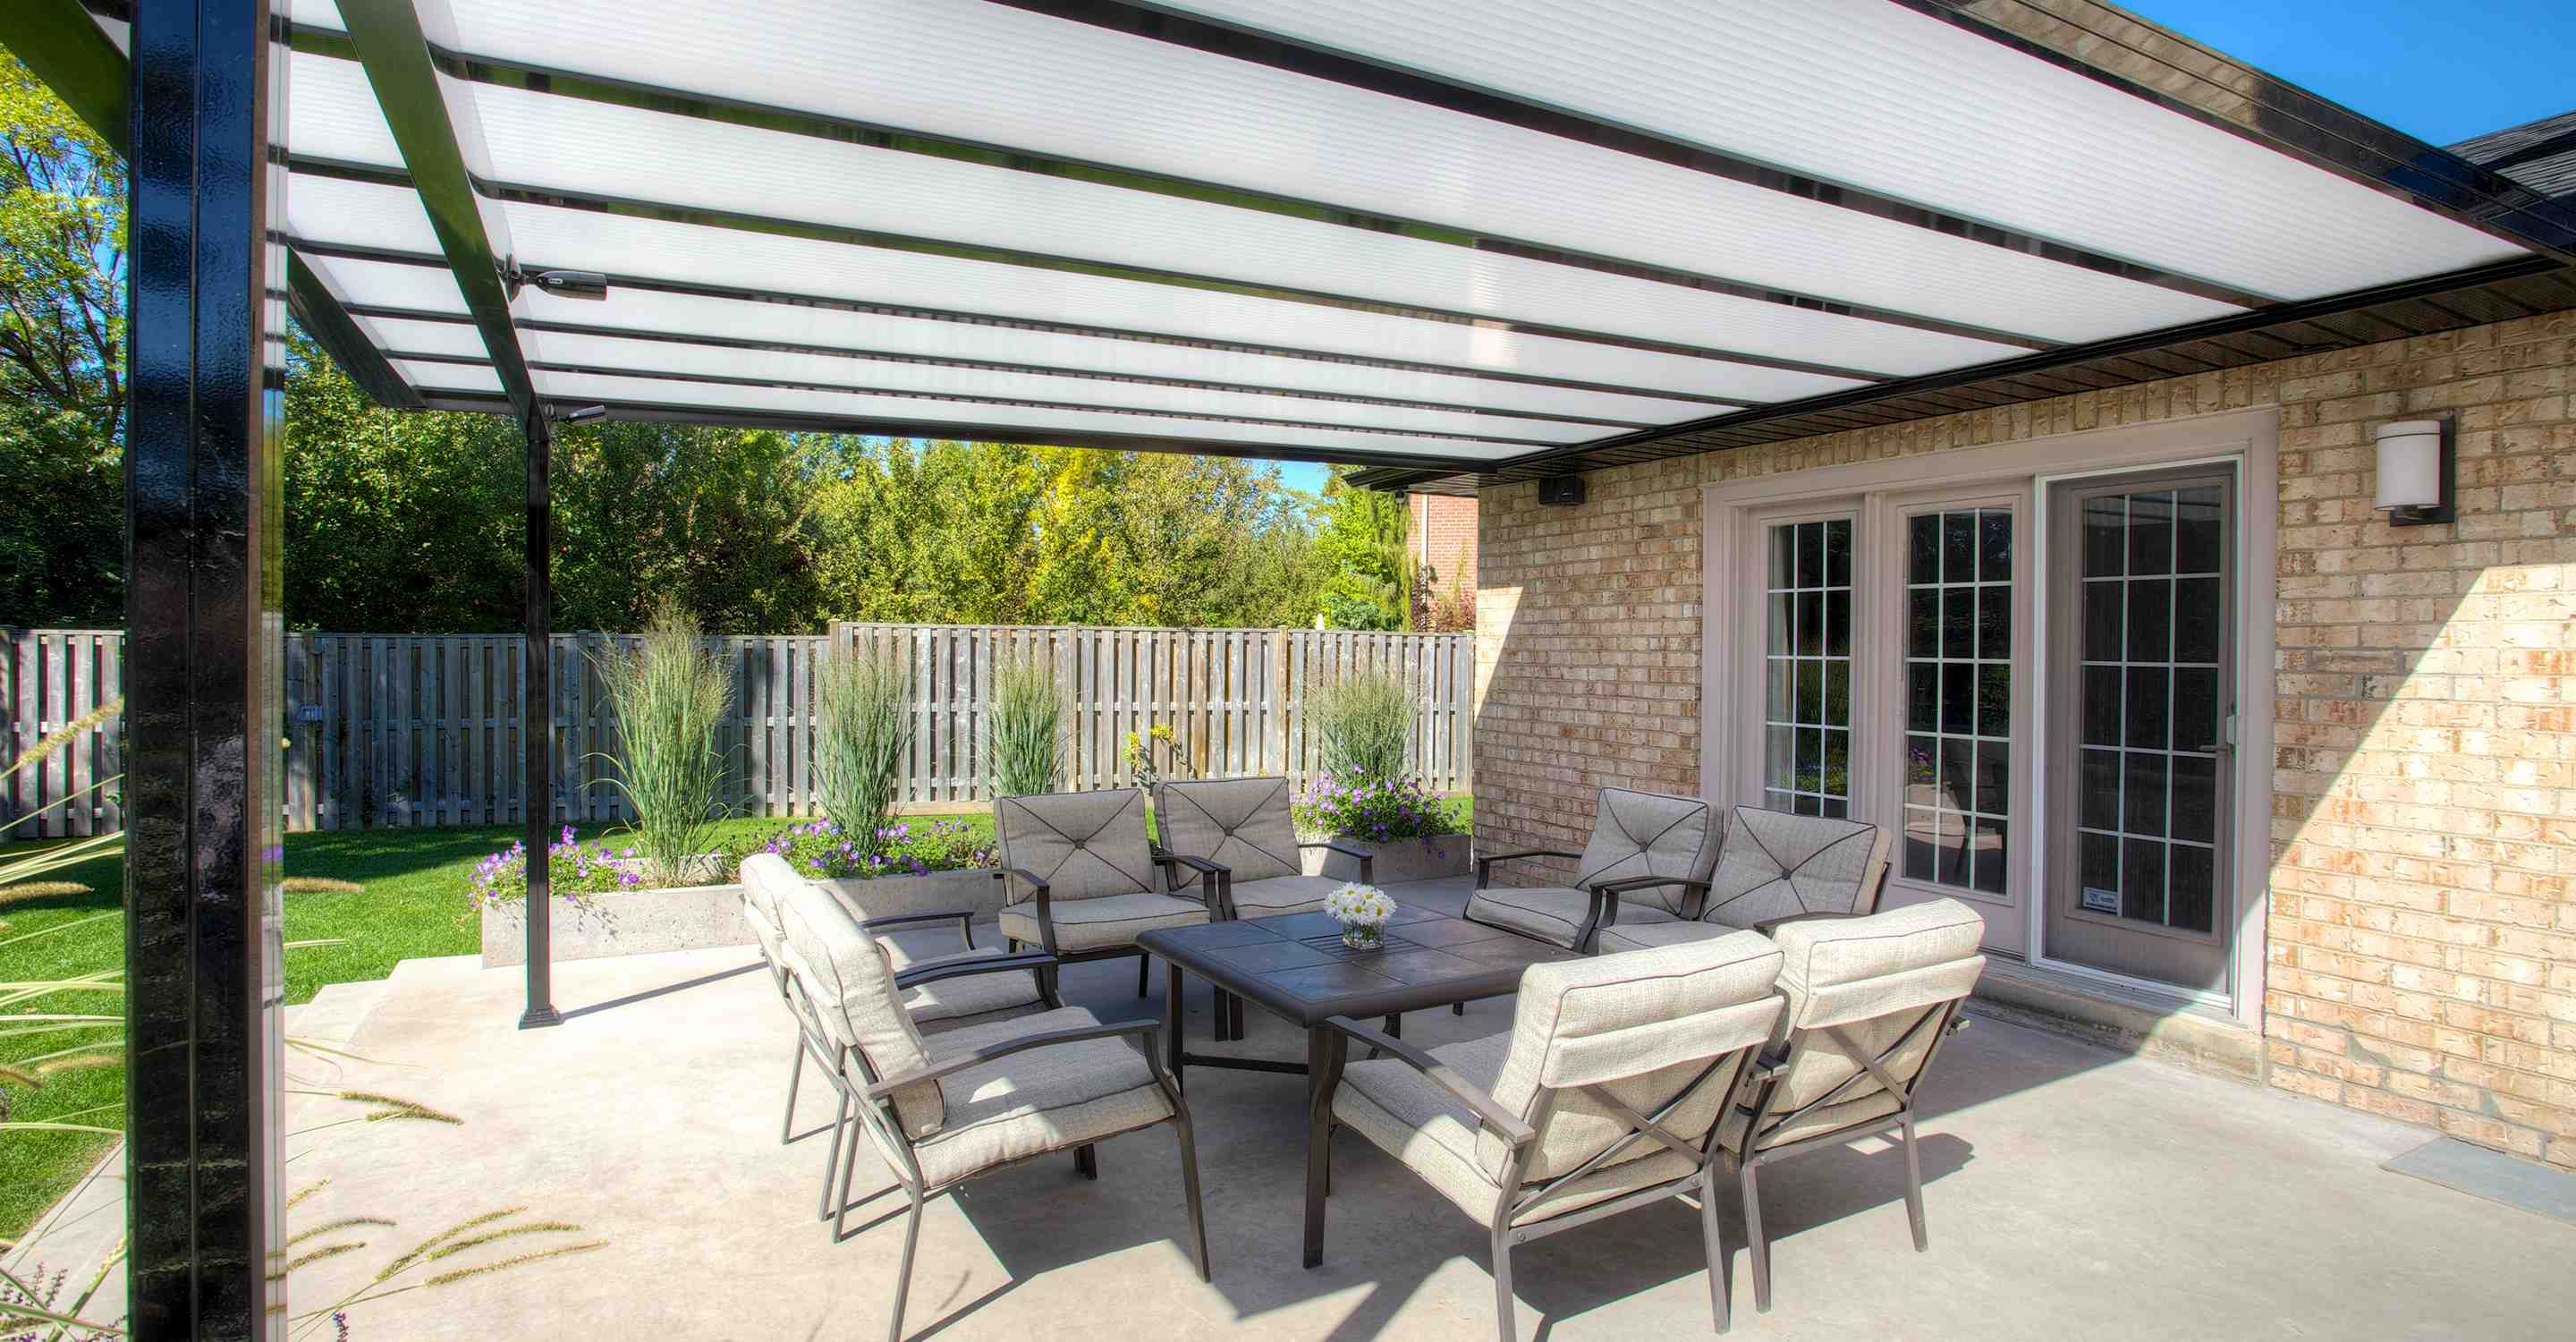 patio cover, patio covers, deck coverings, deck cover options, patio cover options